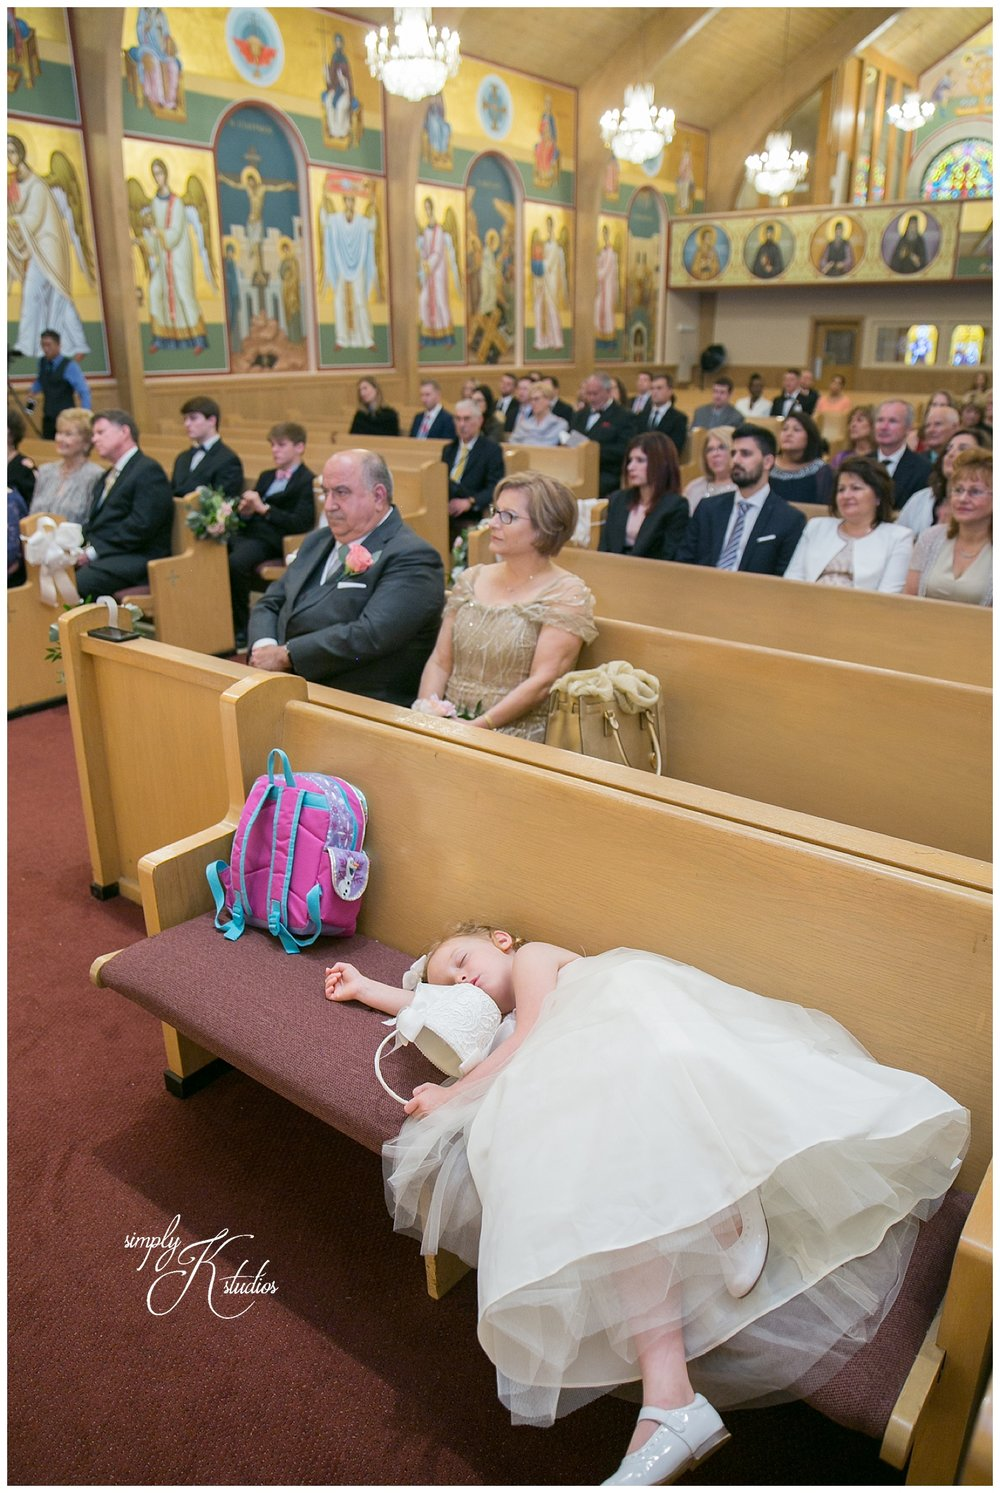 Flower Girl at a Wedding.jpg